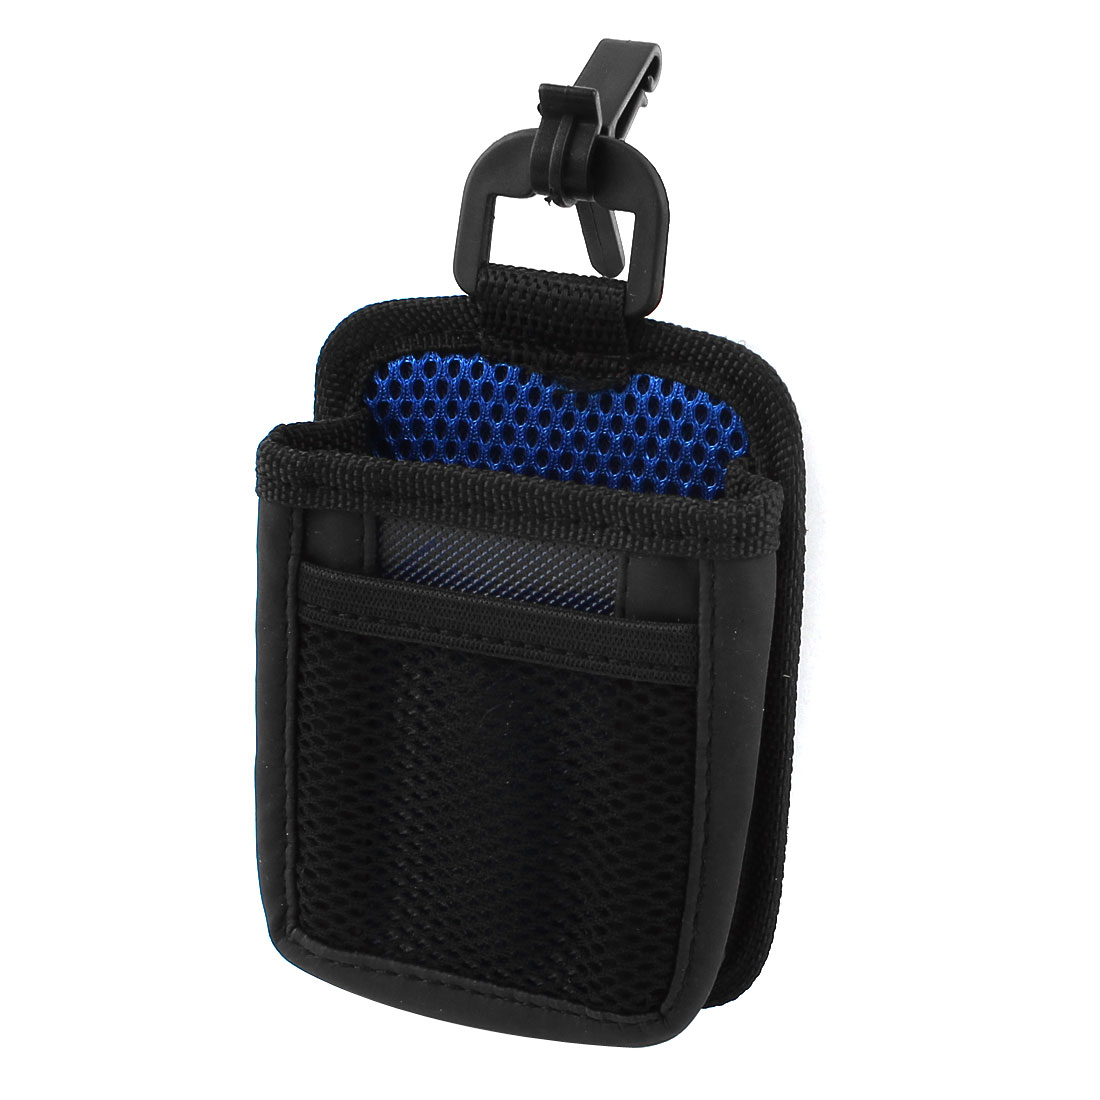 Car Auto Mesh Design Phone Pocket Holder Storage Bag Black Blue